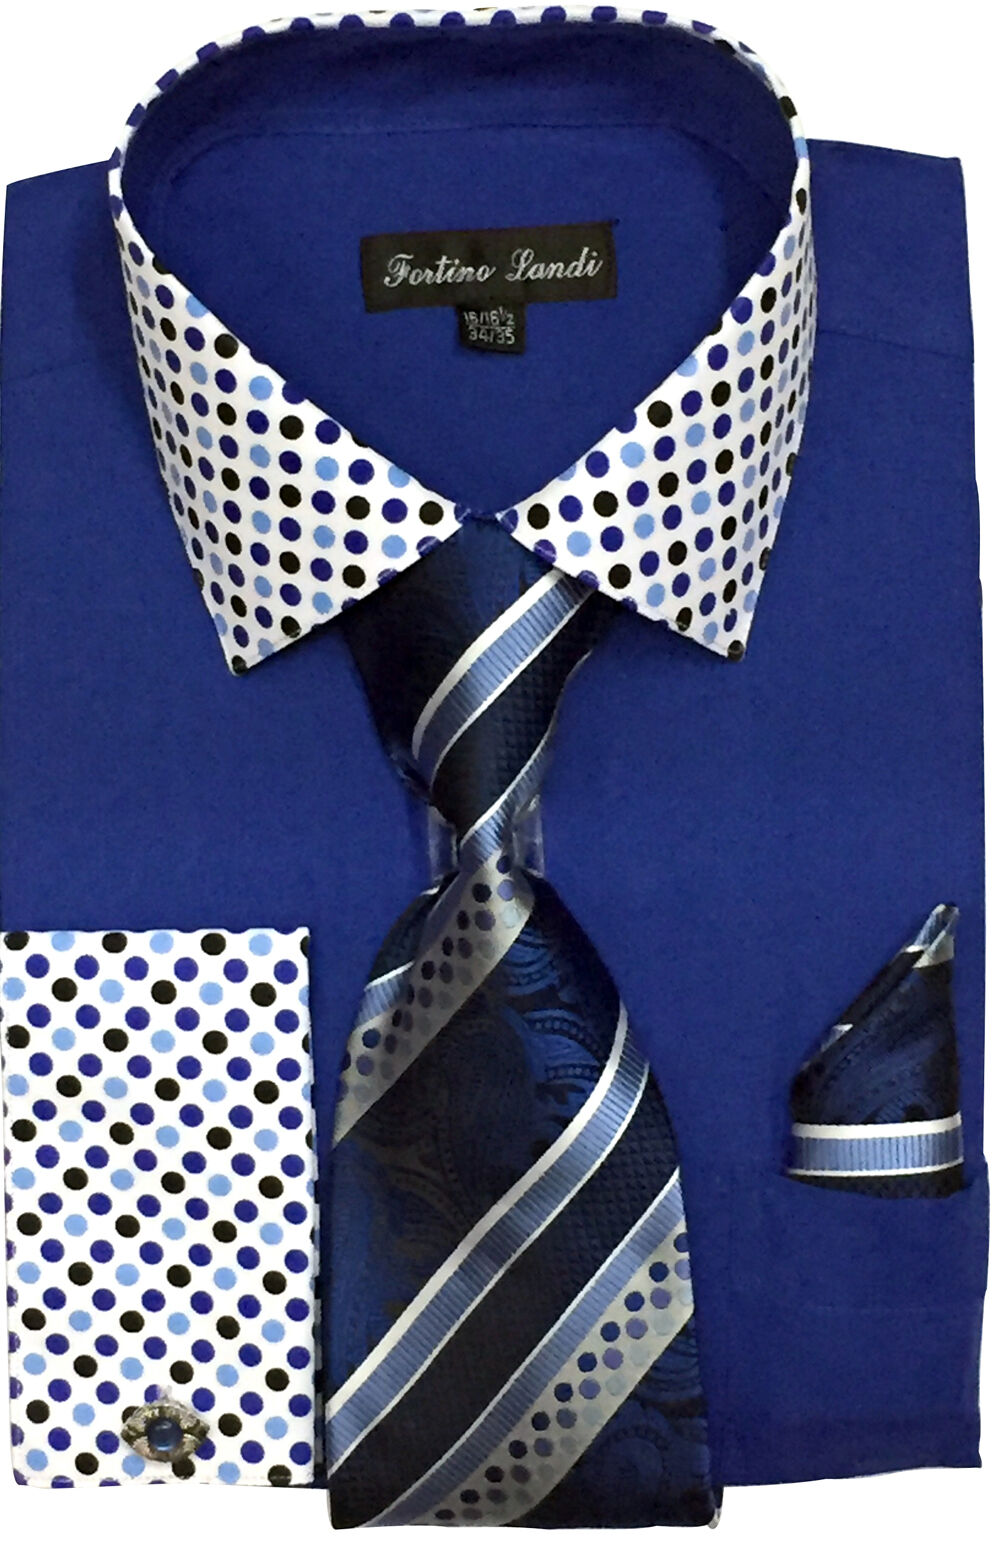 Fortino Landi Shirt FL630-Royal Blue - Church Suits For Less